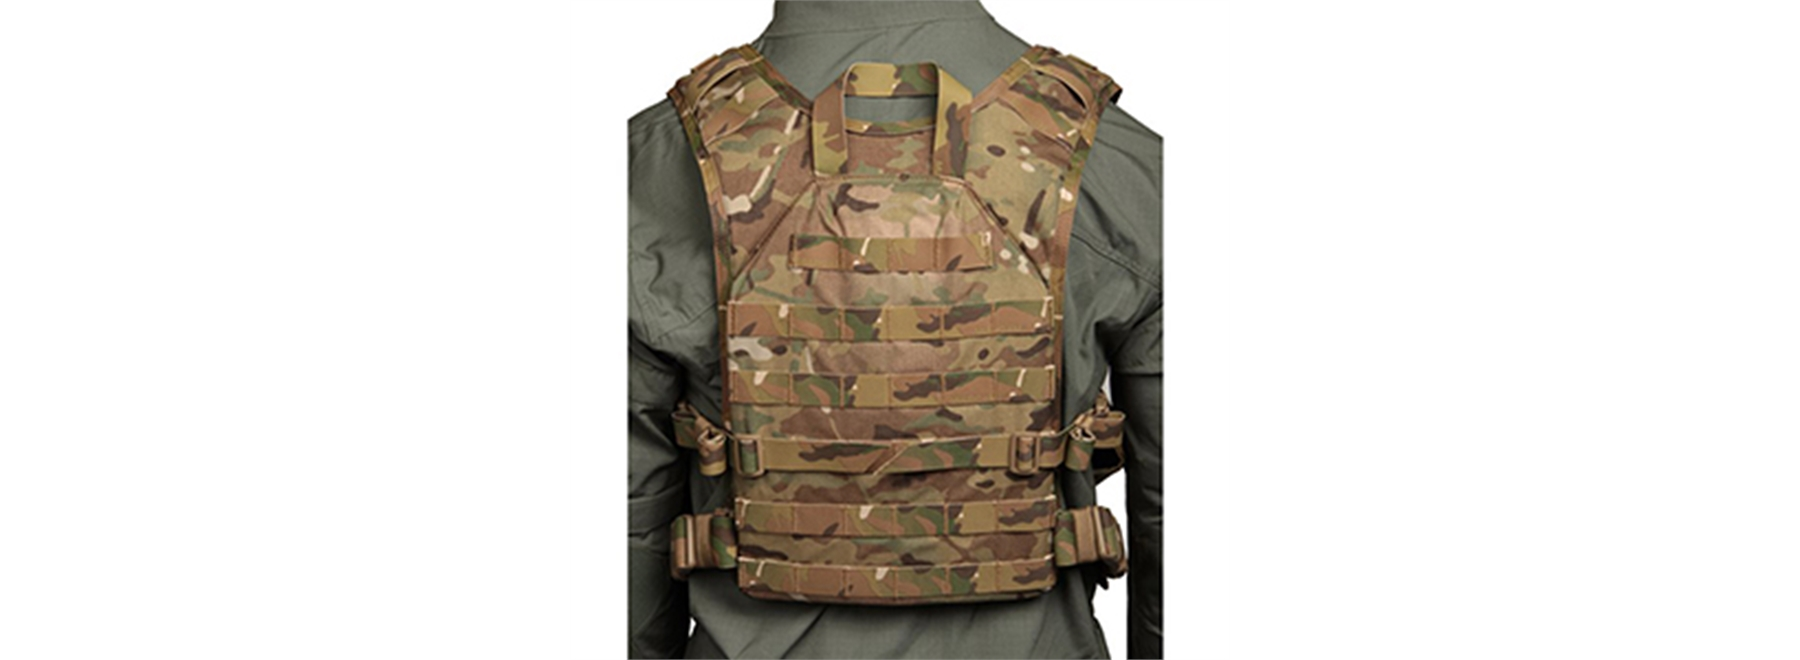 Lightweight S.T.R.I.K.E.® Commando Recon Back Panel (Only)